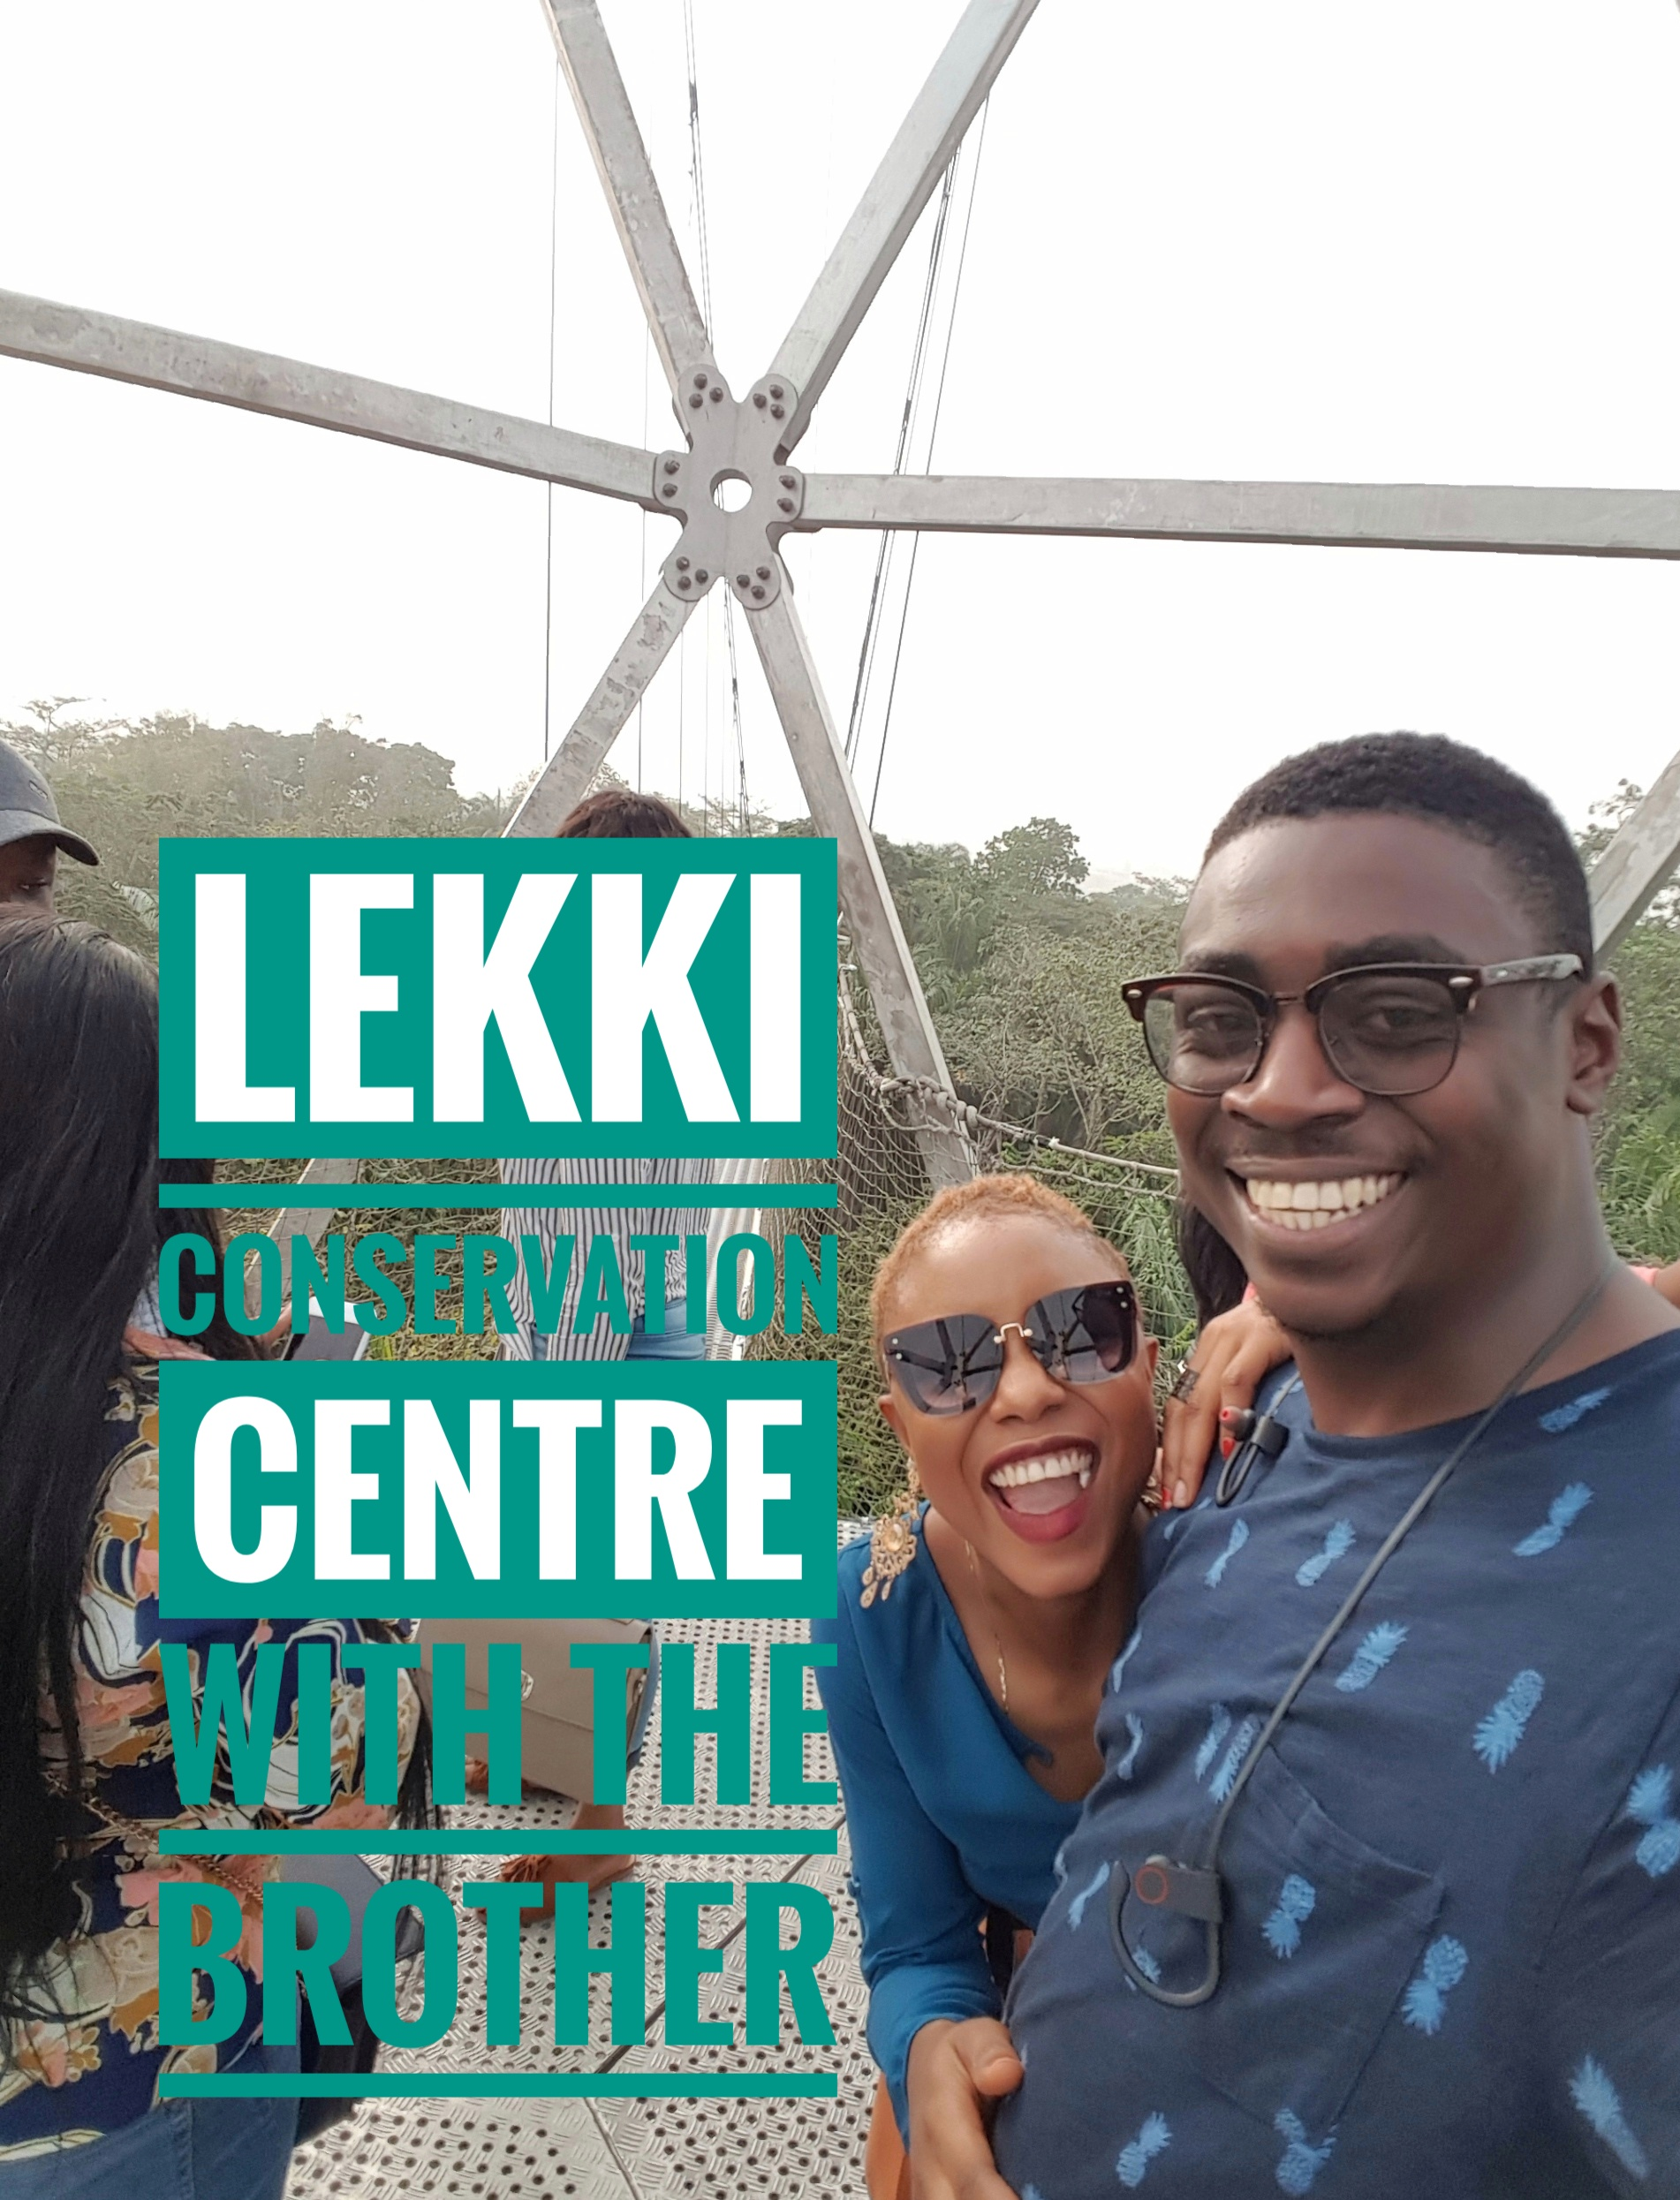 LEKKI CONSERVATION CENTRE WITH THE BROTHER